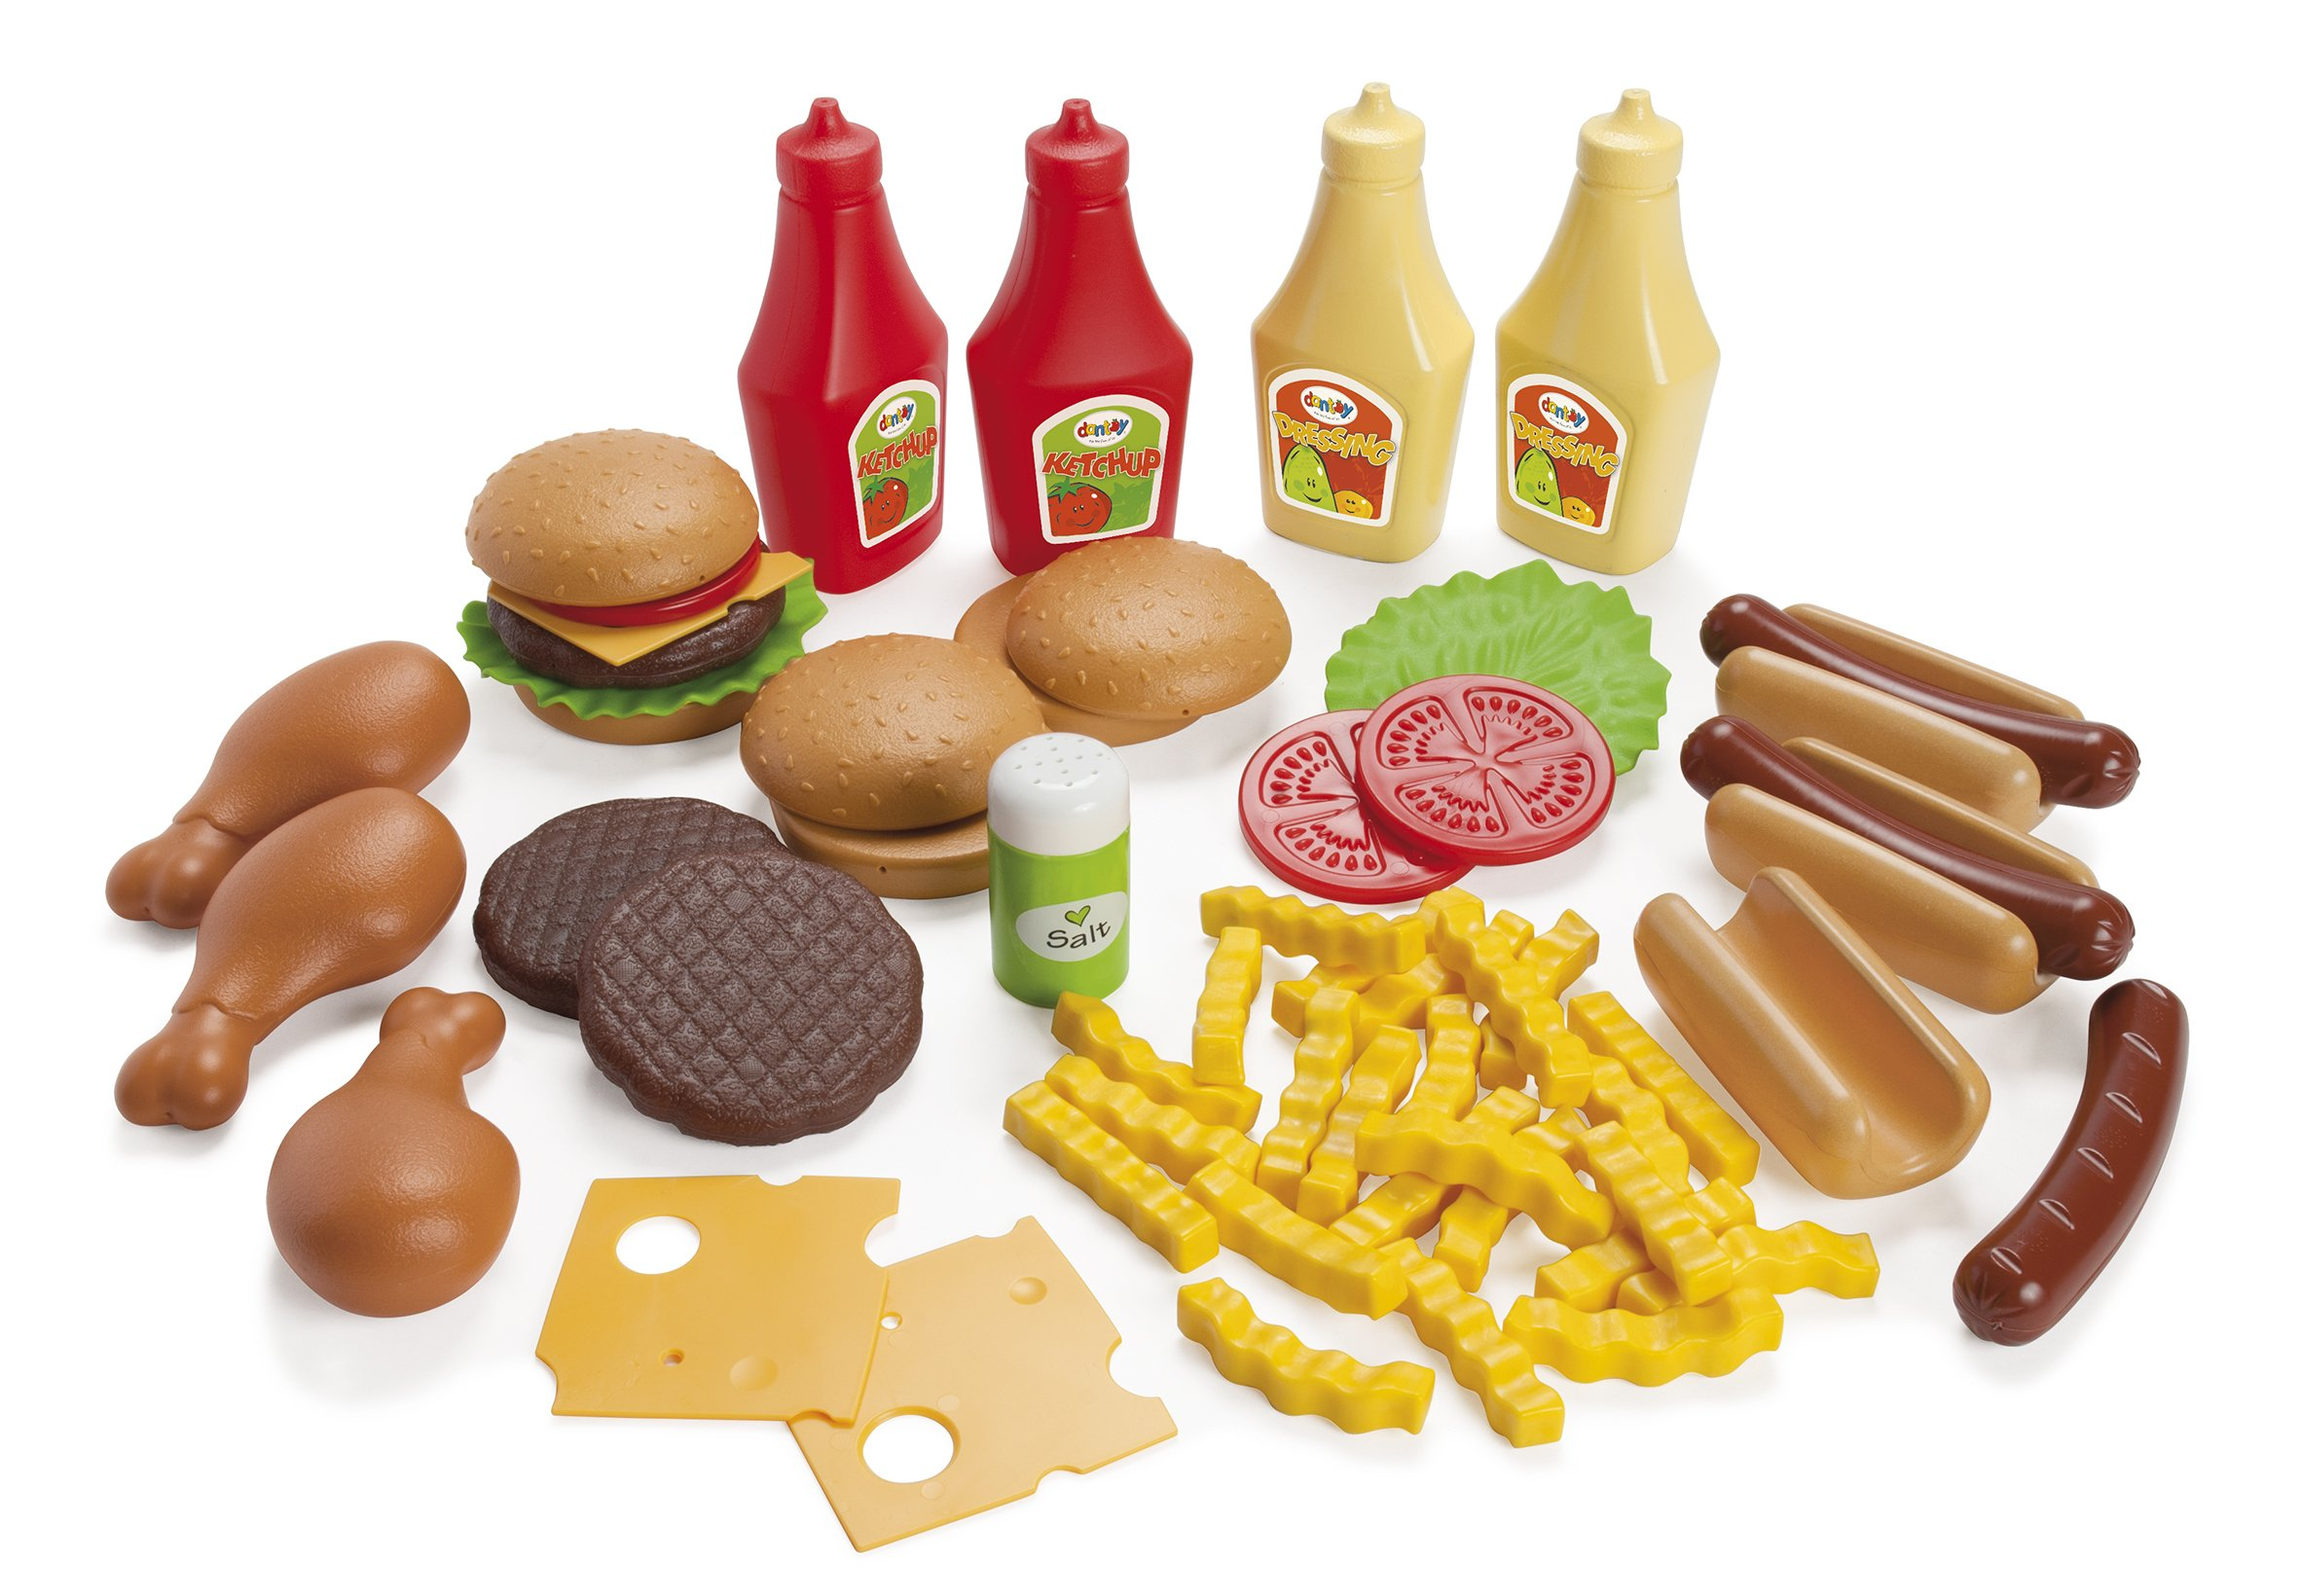 American Educational Products DT-7010 BBQ Food Assortment Activity Set, 3.512'' Height, 8.976'' Wide, 14.82'' Length